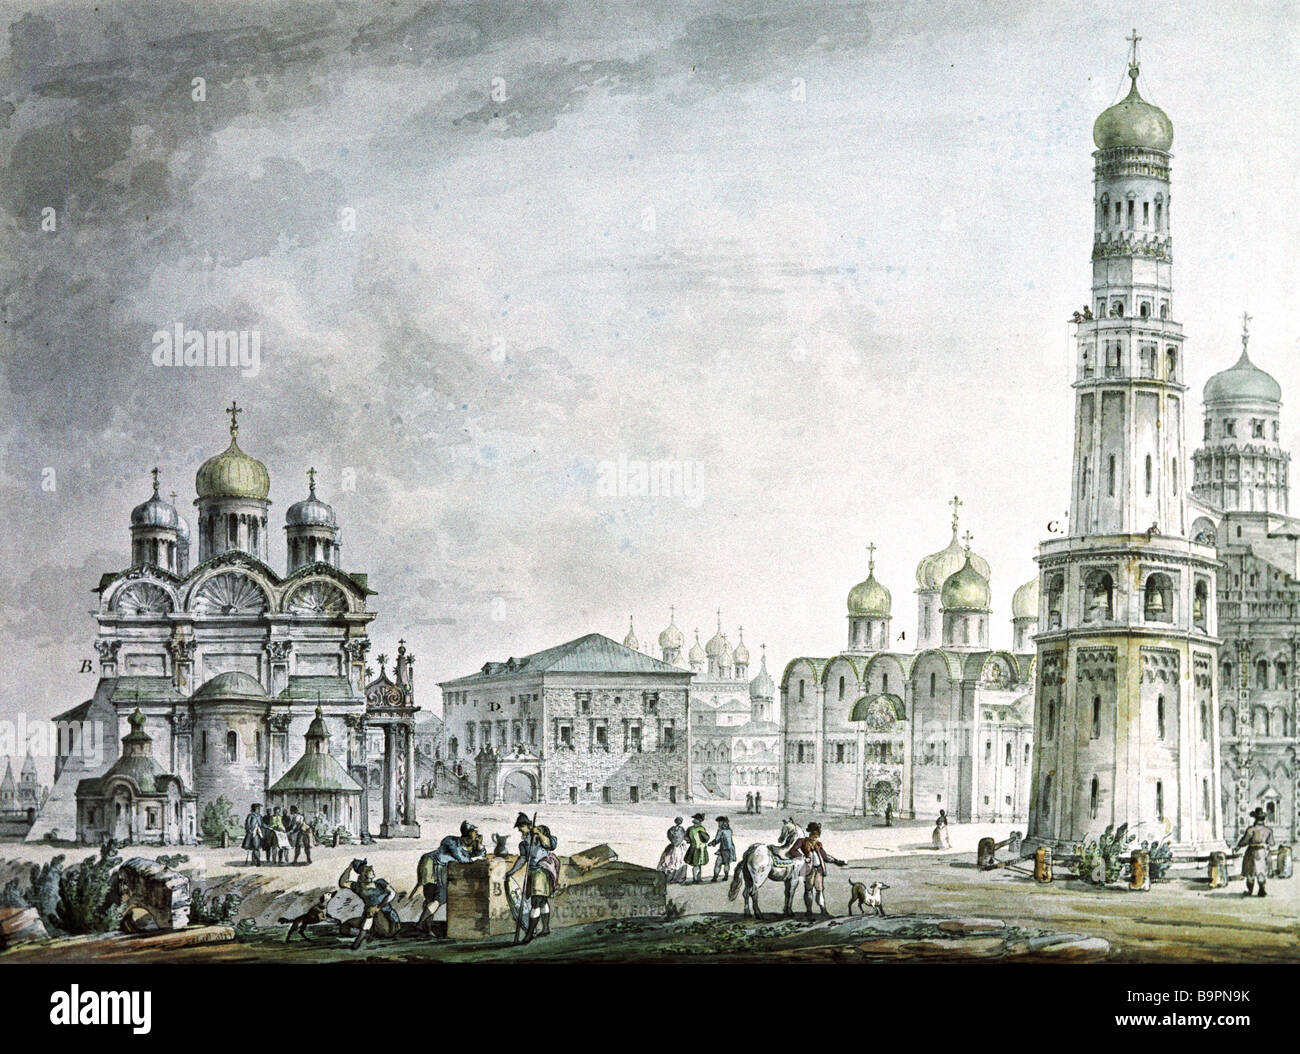 La reproduction de l'aquarelle la Place du Palais du Kremlin par Giacomo Quarenghi 1744 1817 Le Musée de Photo Stock